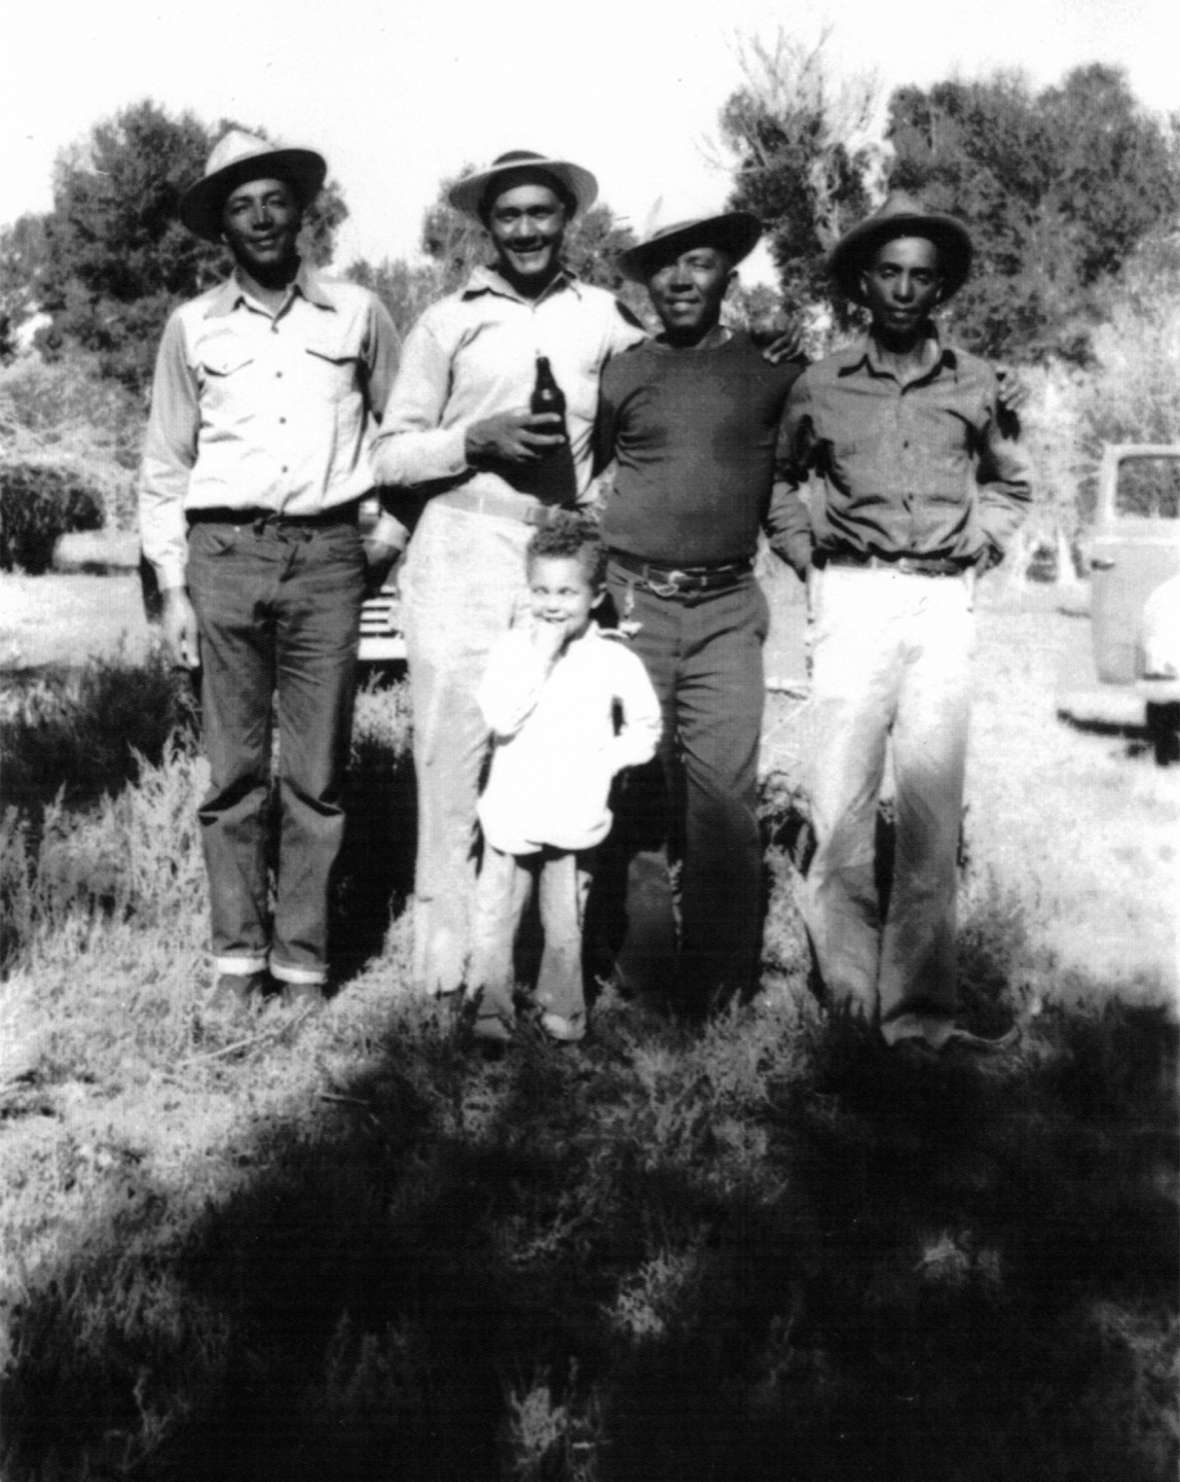 "Left to right, Bill Stepp, brother-in-law Ed Steward, John and Horace Greeley ""Dutch"" Stepp; Dutch's son Gary in front. Bill, John and Dutch were sons of Lon Stepp. Around 1950. Stepp family photo."